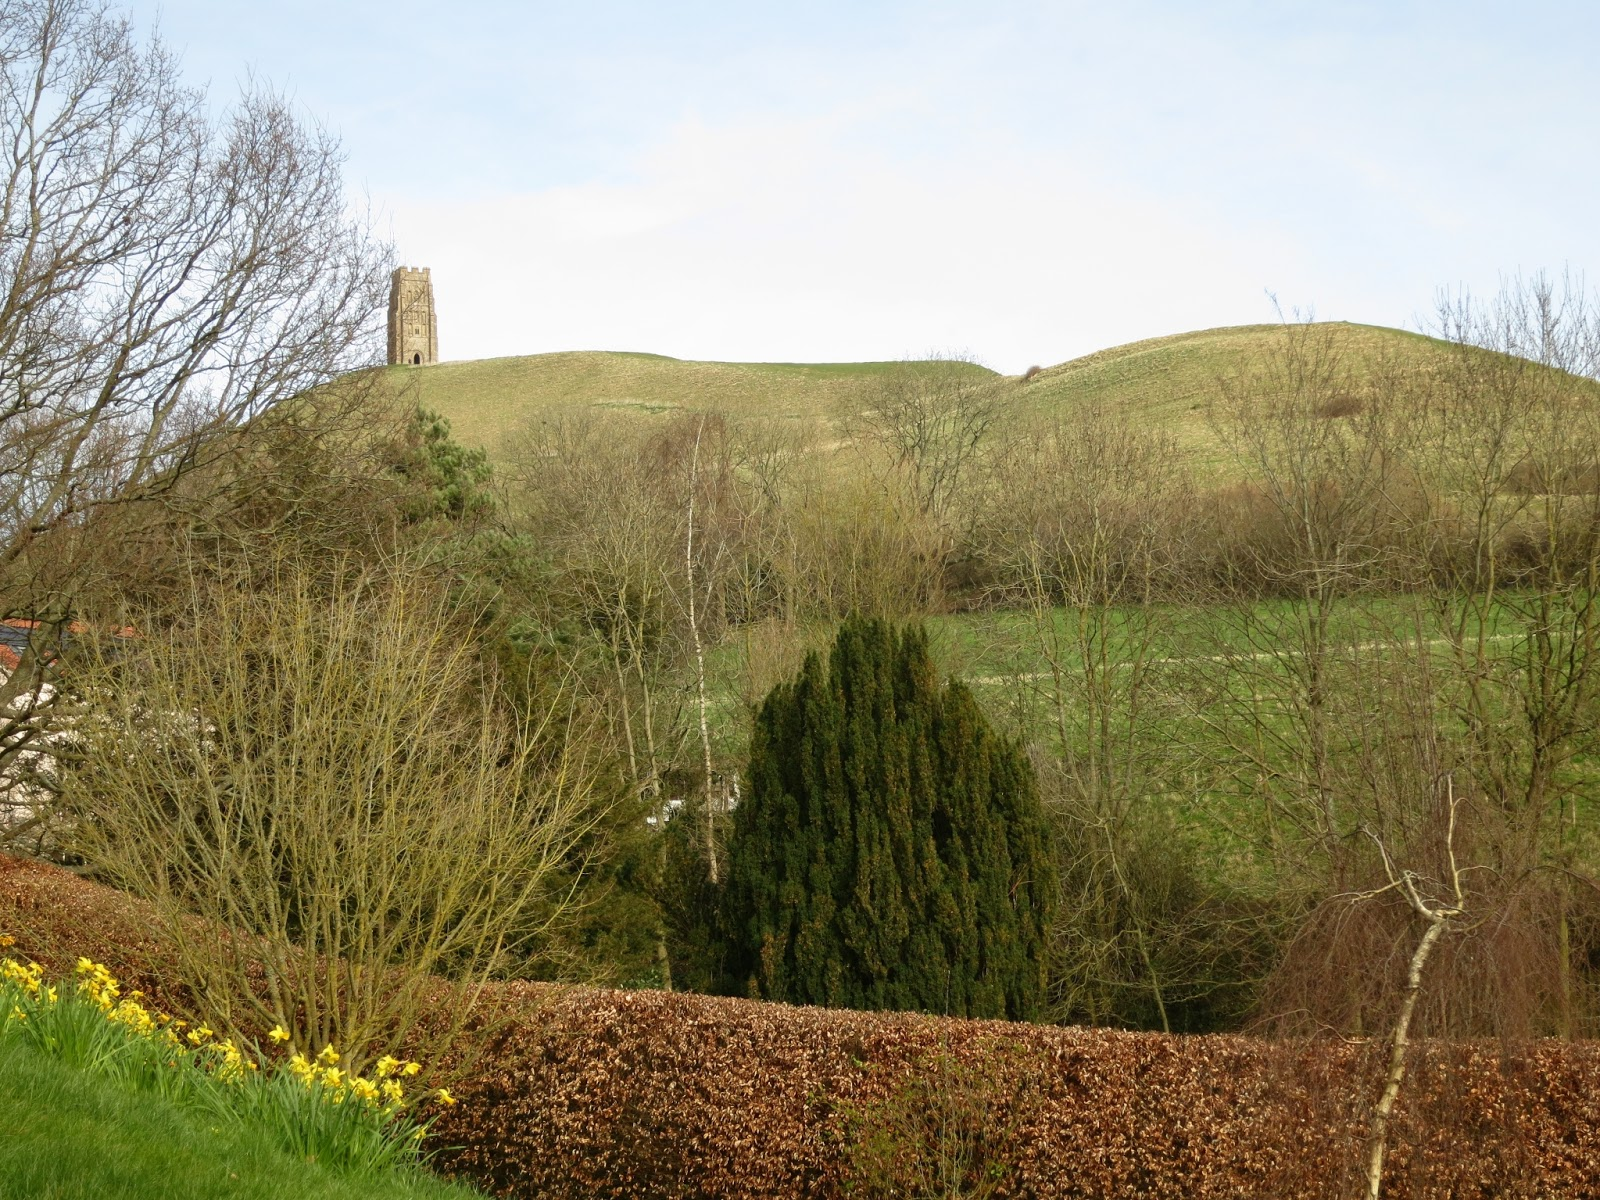 Tower on Glastonbury Tor, with trees, daffodils and beech hedge in foreground